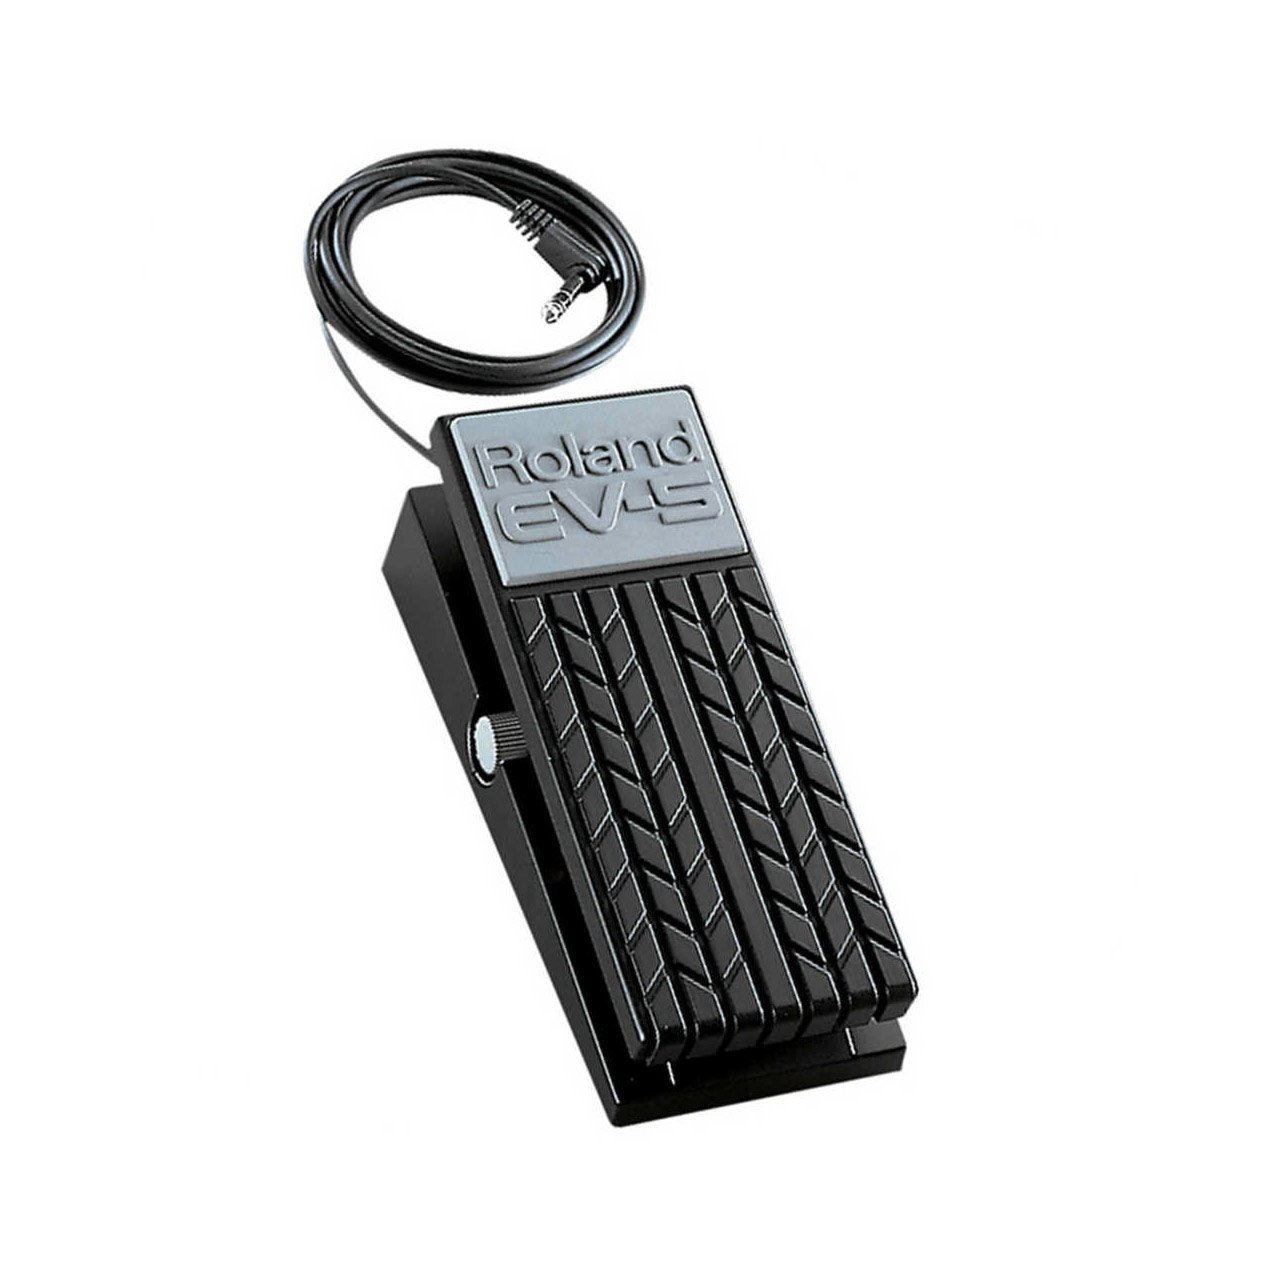 Keyboard Accessories - Roland EV-5 Expression Pedal